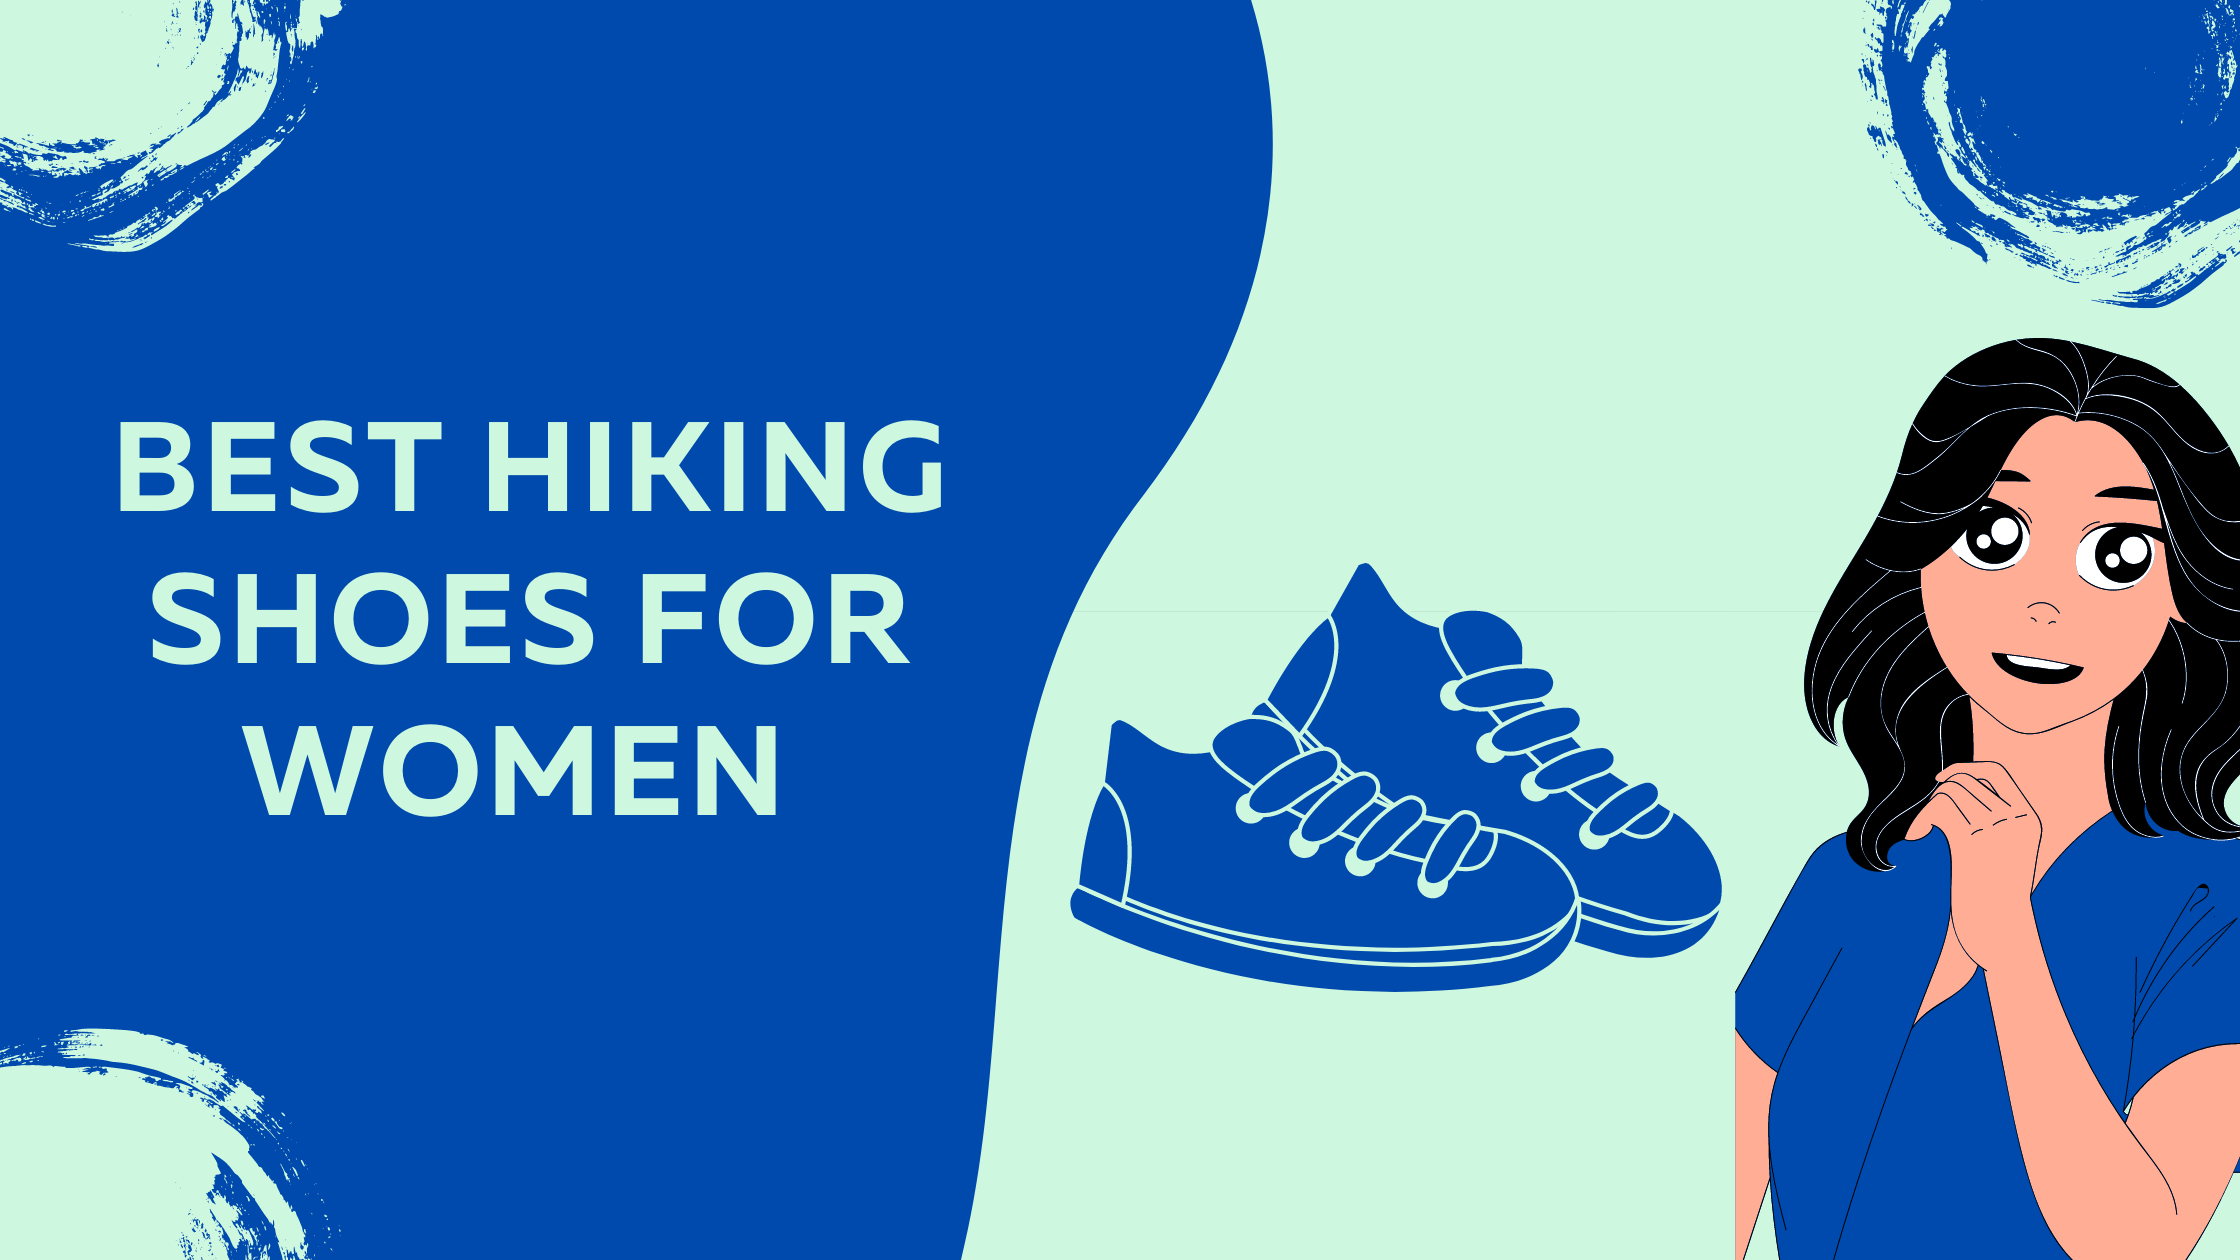 Best Hiking Shoes For Women To Next Outdoor Adventure